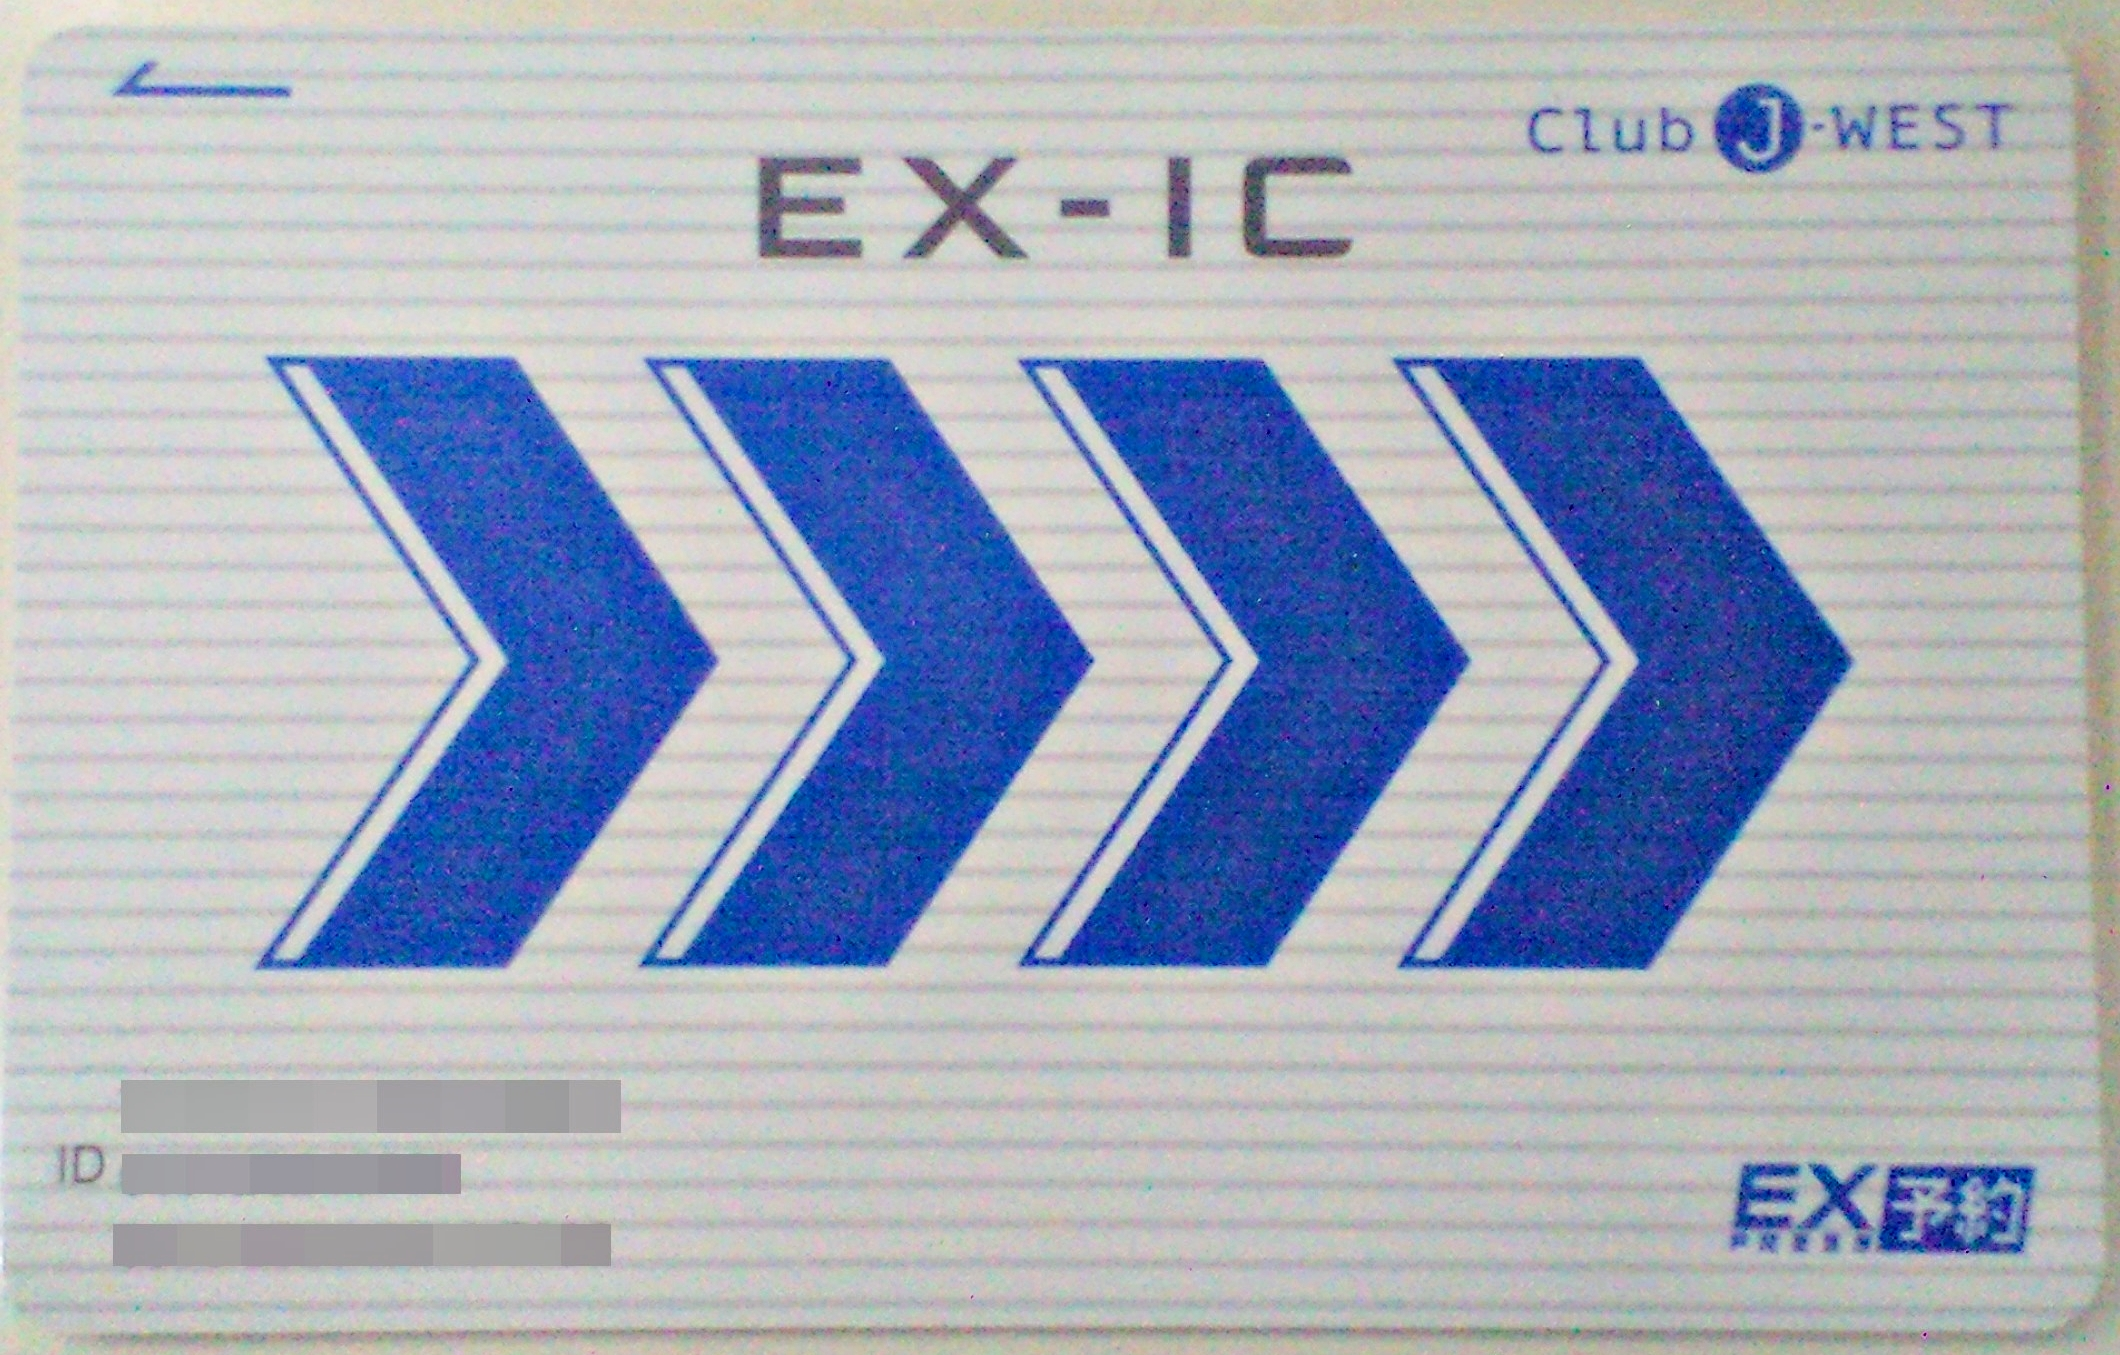 EX-IC_J-WEST_card-crop.jpg